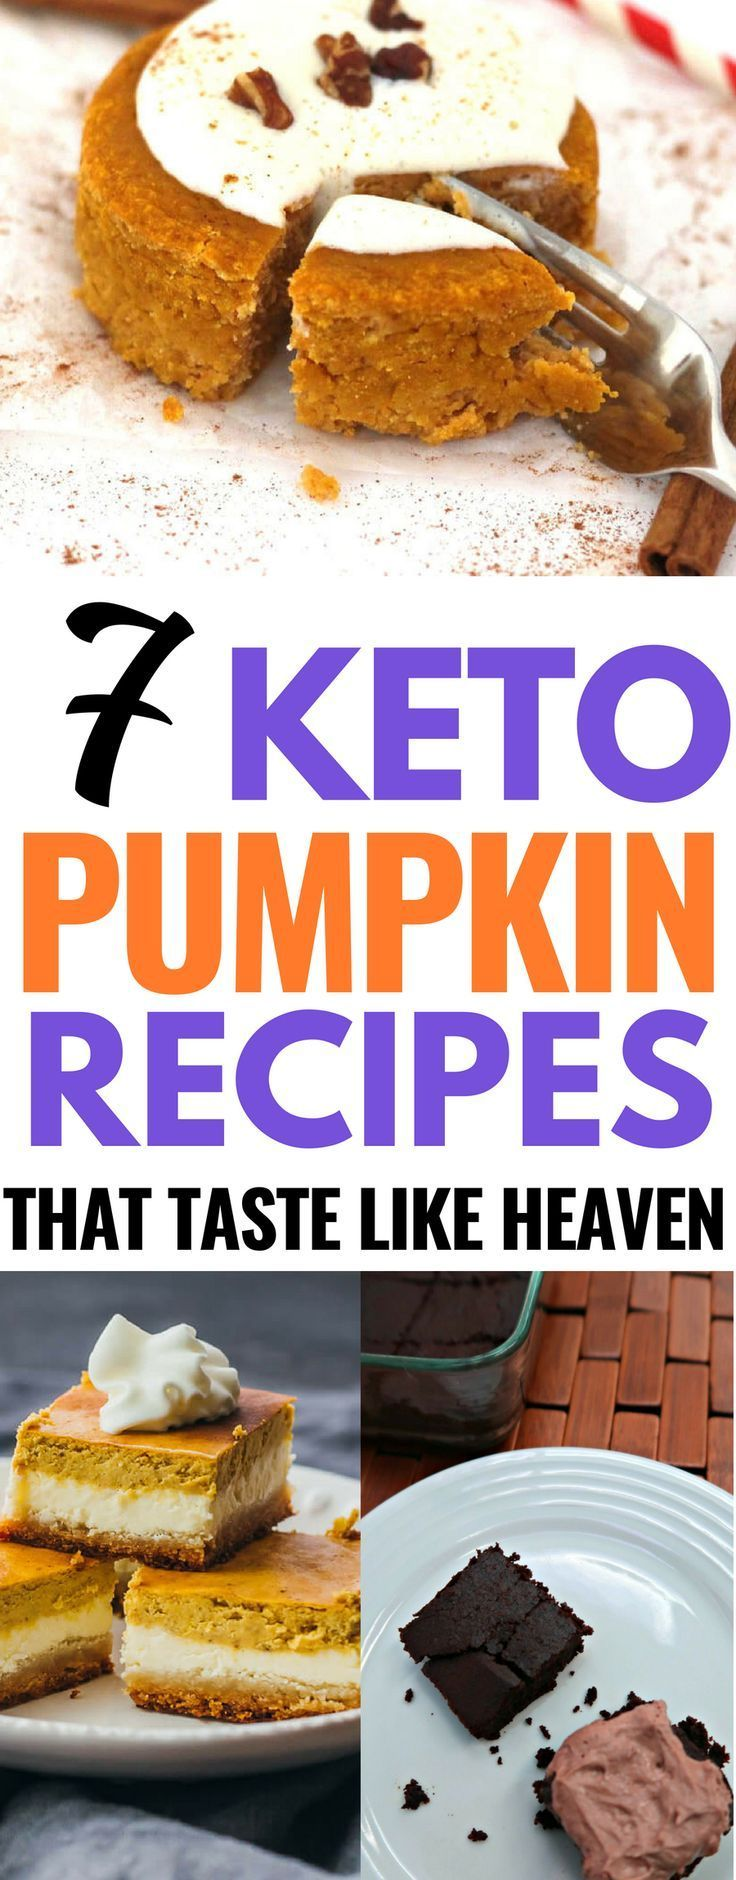 These keto pumpkin recipes are THE BEST! I'm so glad I found these low carb pump…